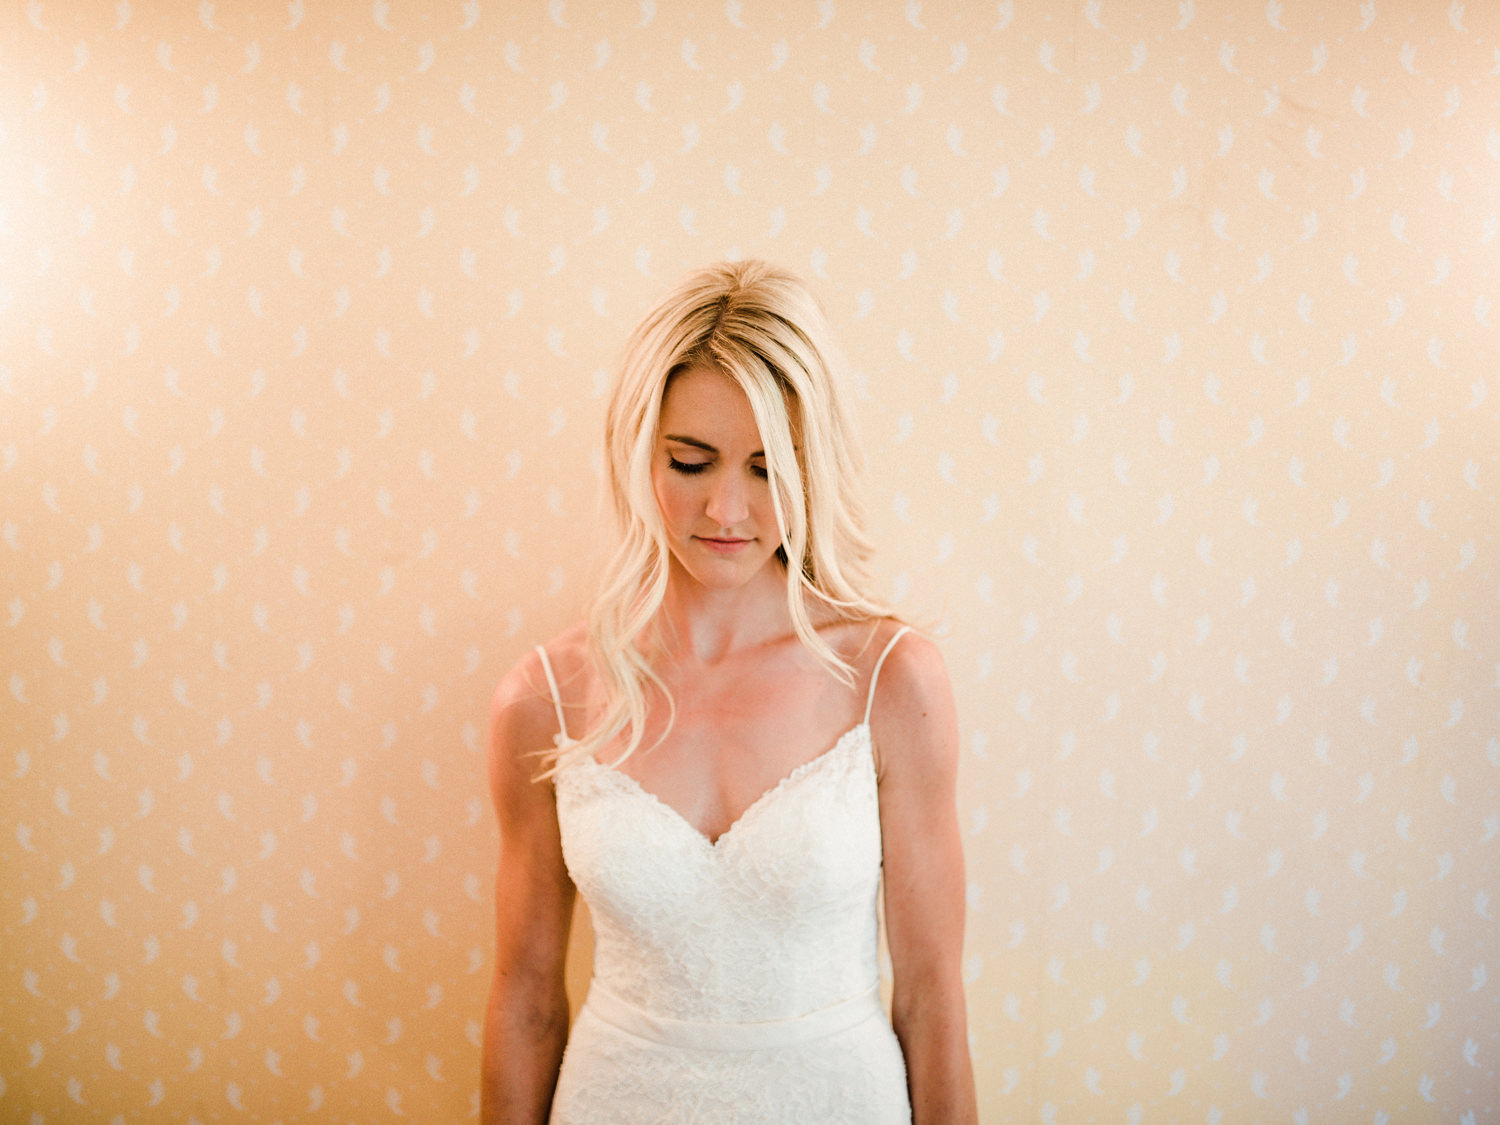 ryan-flynn-best-wedding-photography-2015-seattle-film-photographer-0212.JPG